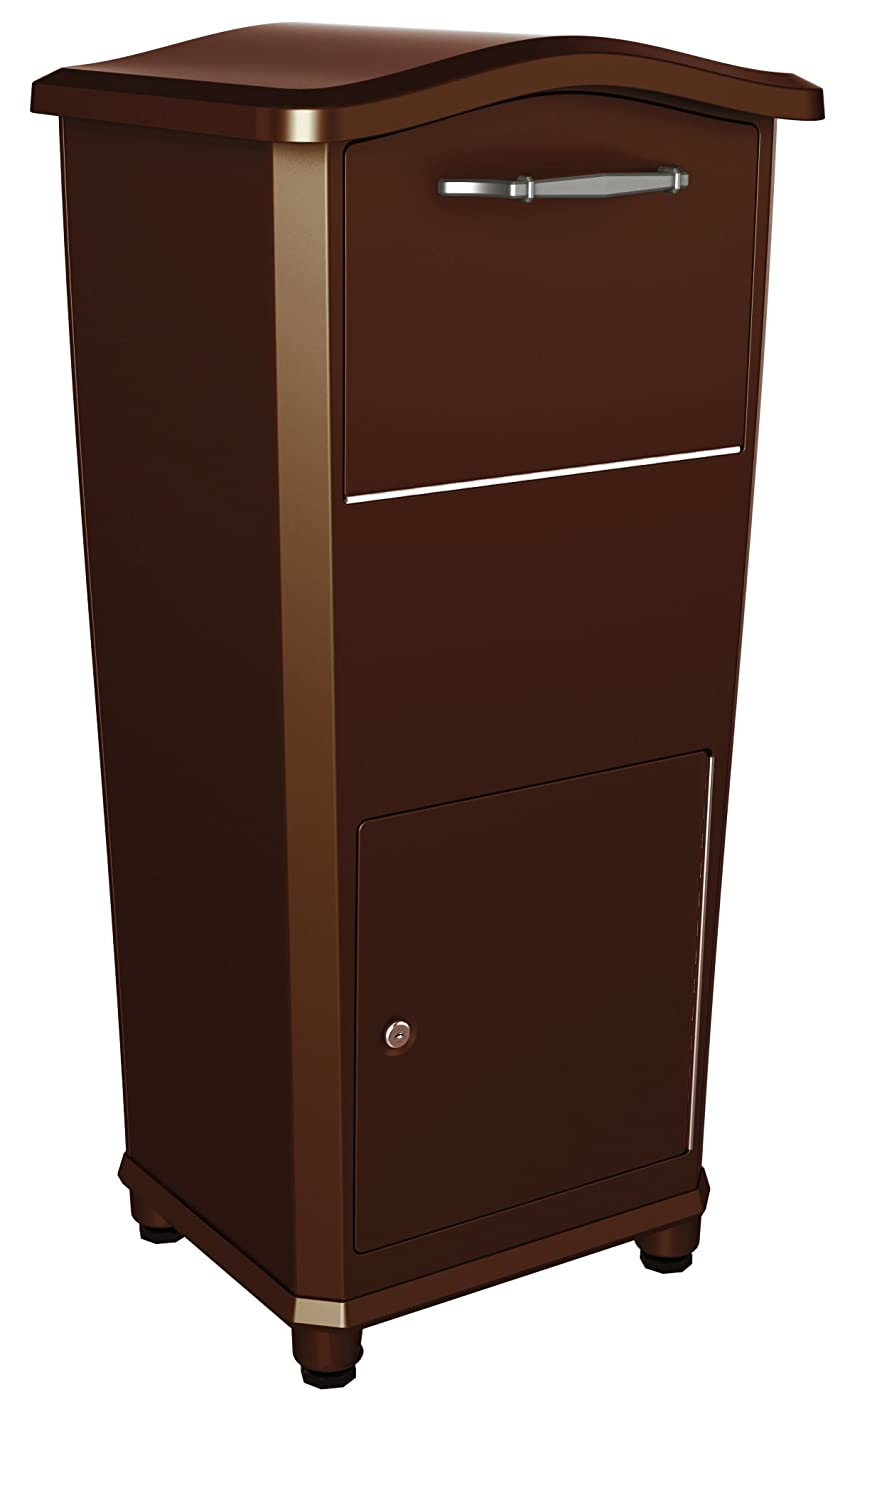 home mailboxes parcel drop box heavy duty mailbox package. Black Bedroom Furniture Sets. Home Design Ideas